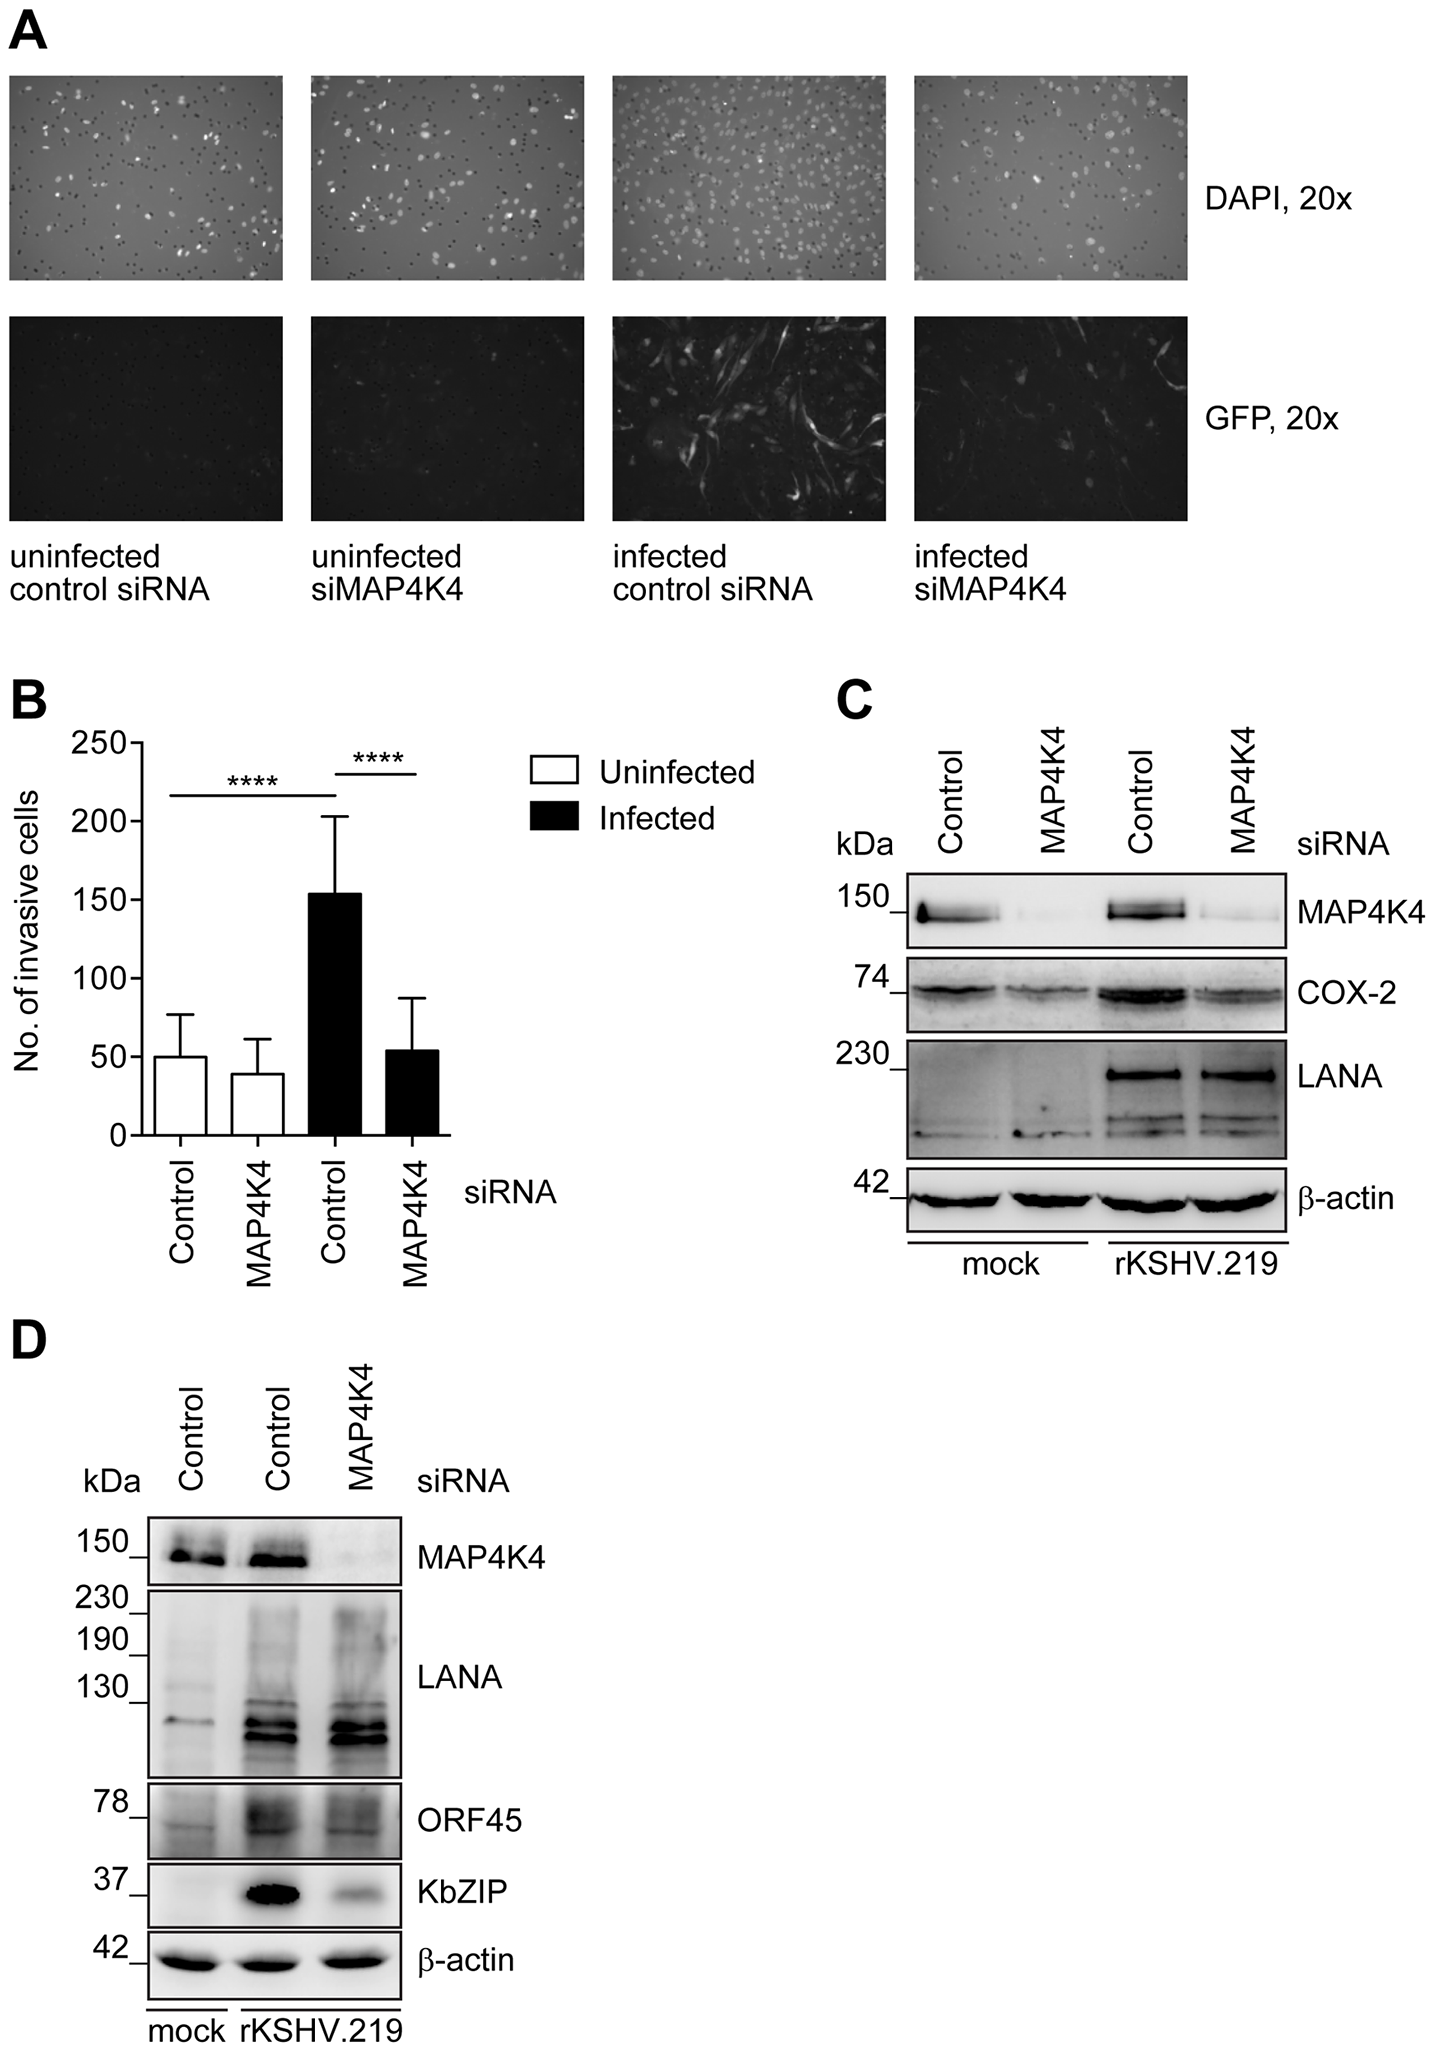 Increased MAP4K4 expression in KSHV-infected primary endothelial cells promotes their invasiveness.